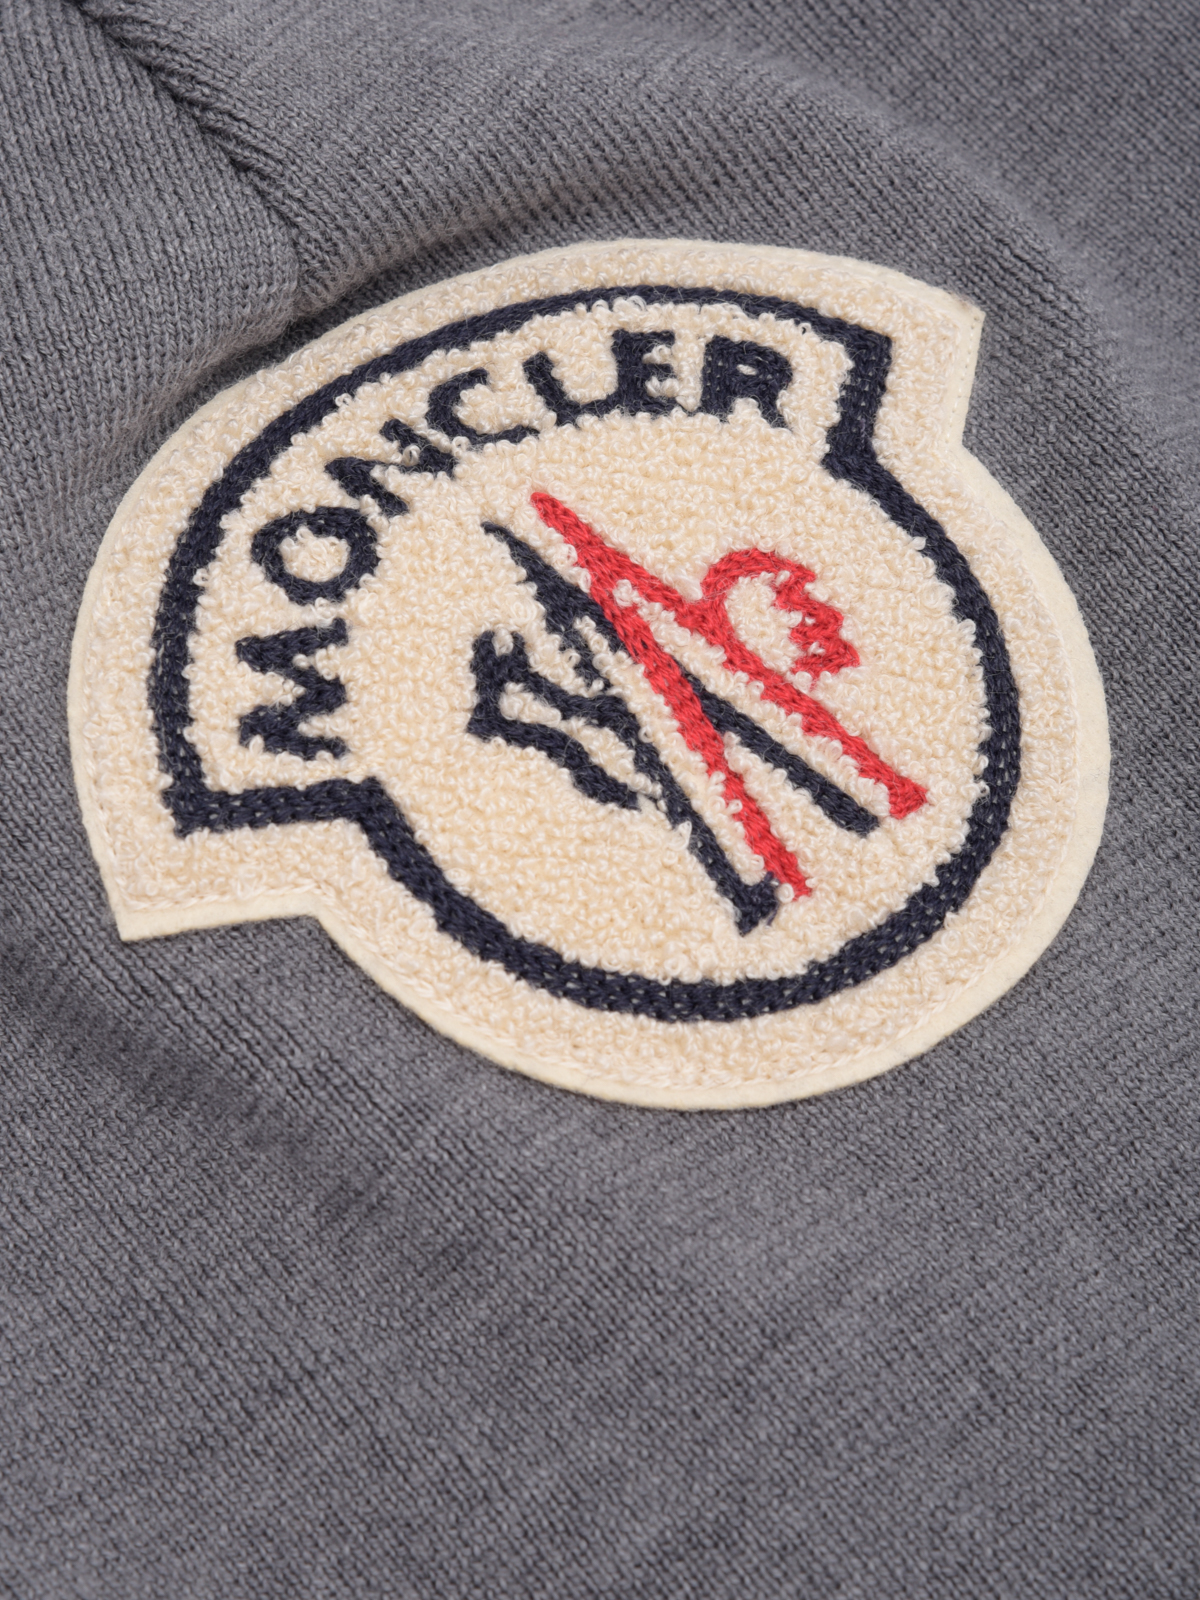 Moncler patch for sale